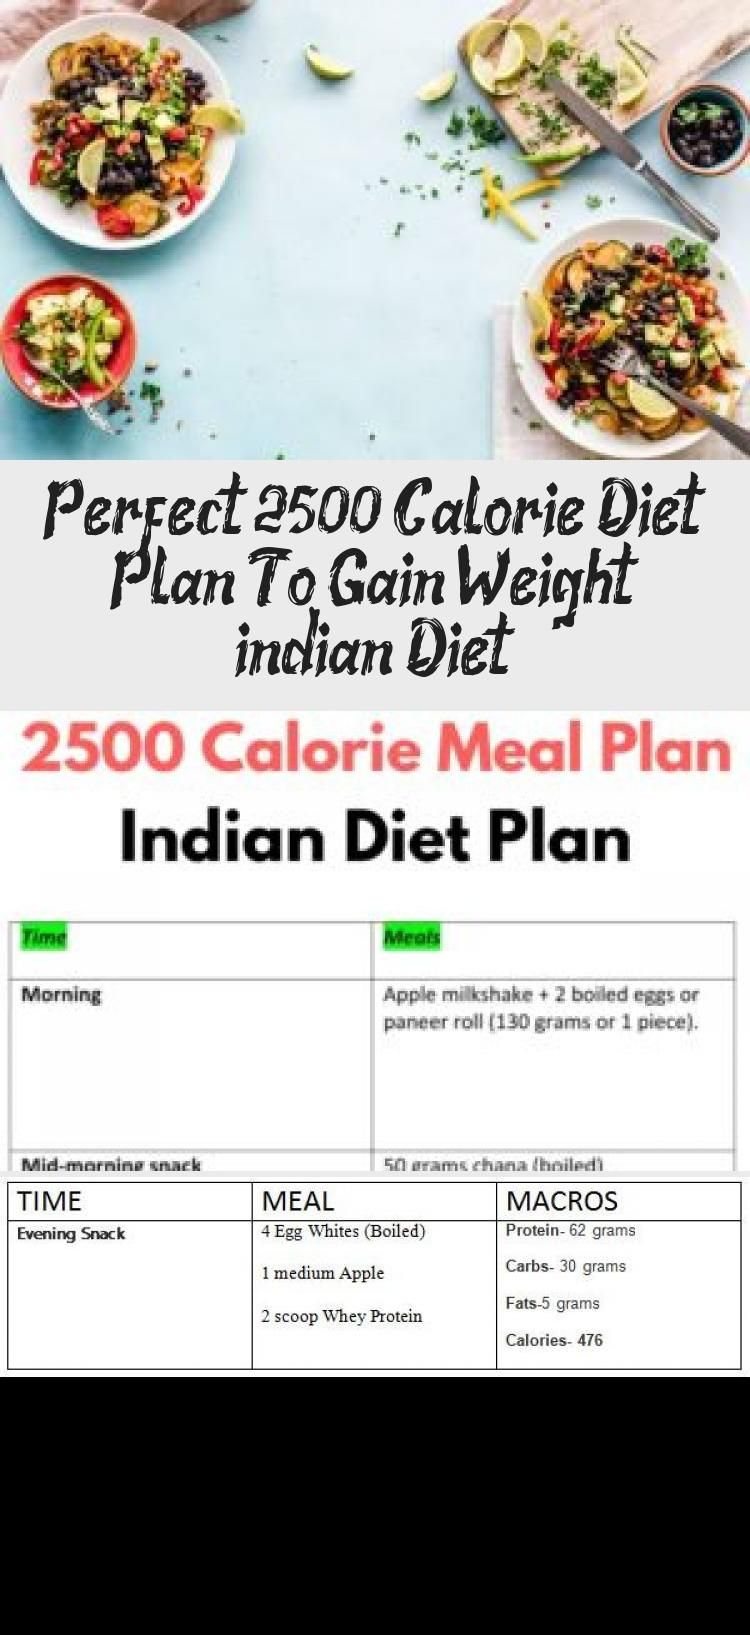 Perfect 2500 Calorie Diet Plan To Gain Weight (indian